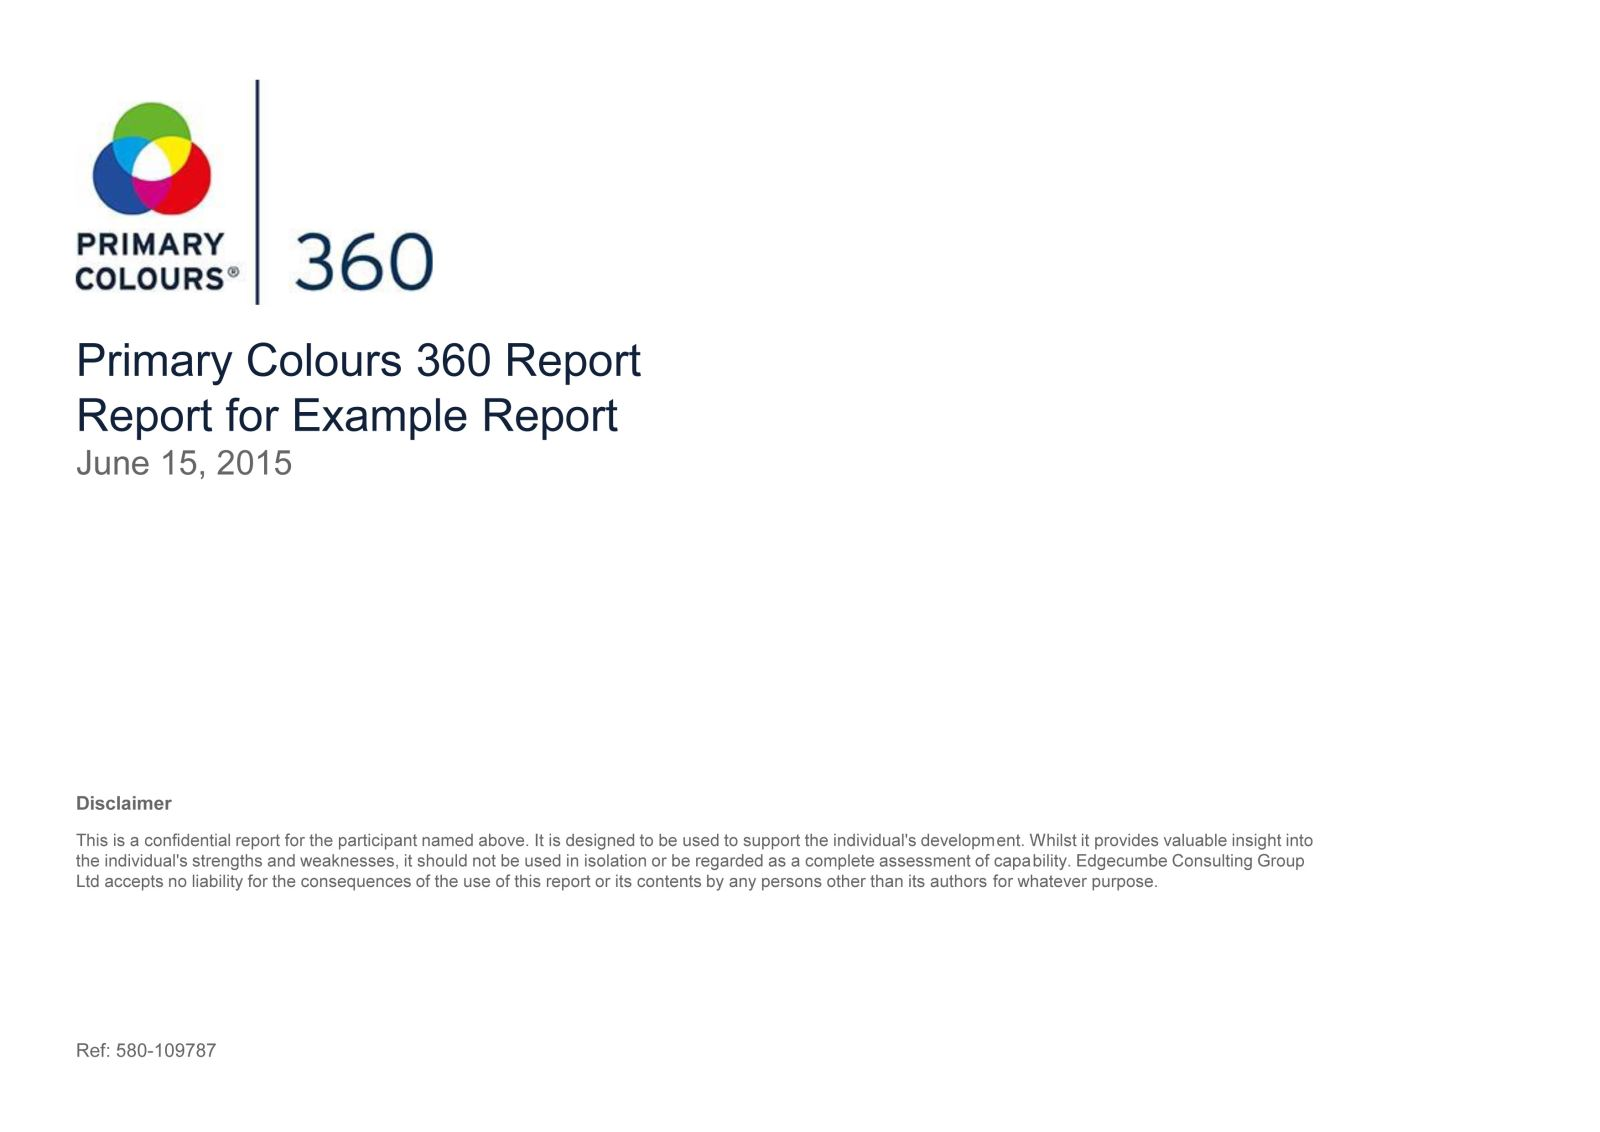 Primary Colours 360 Report